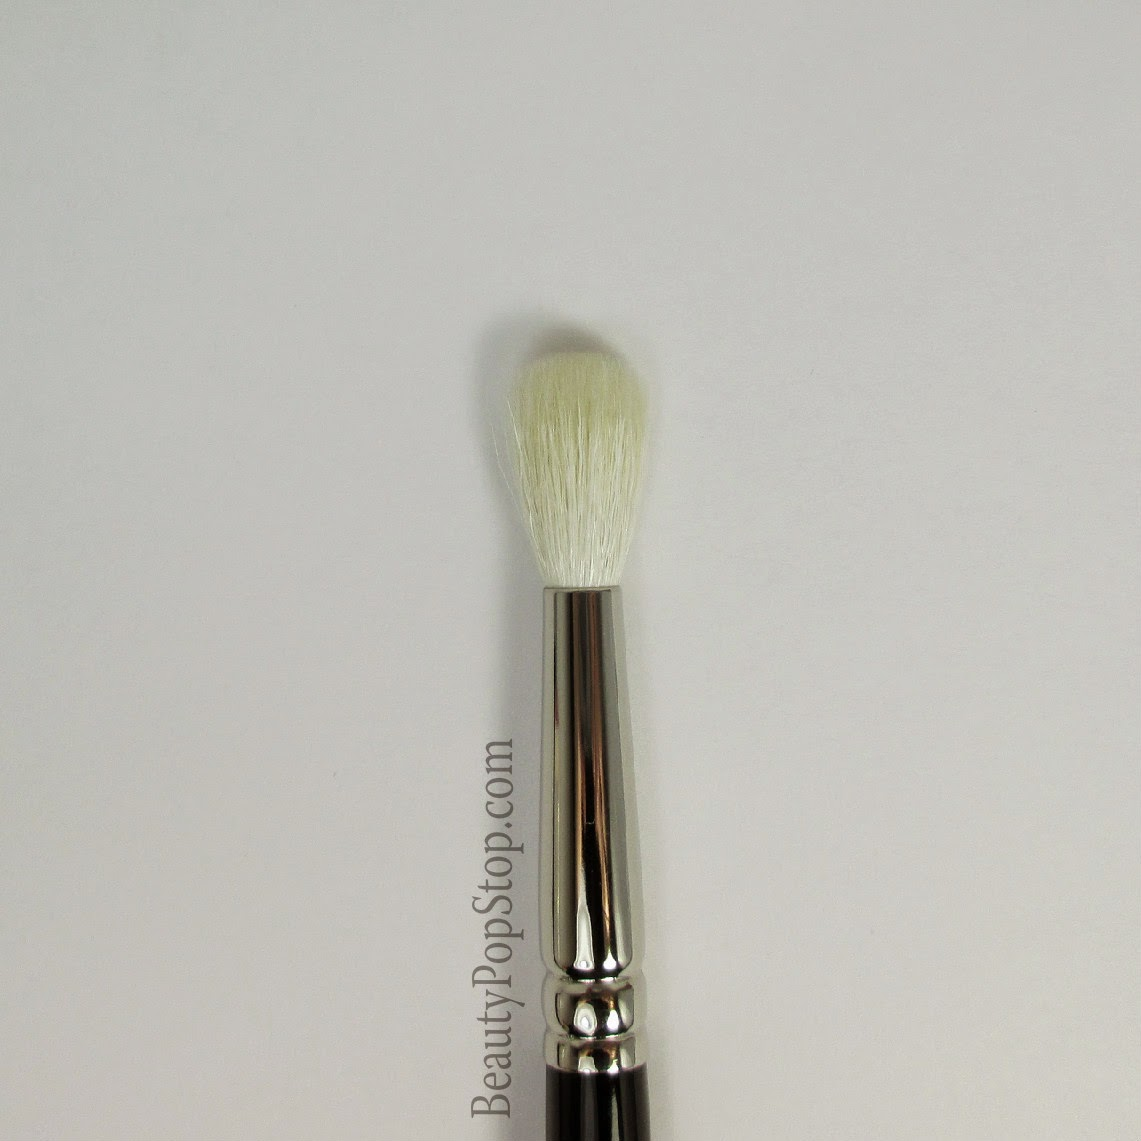 hakuhodo j5533 japanese makeup brush review